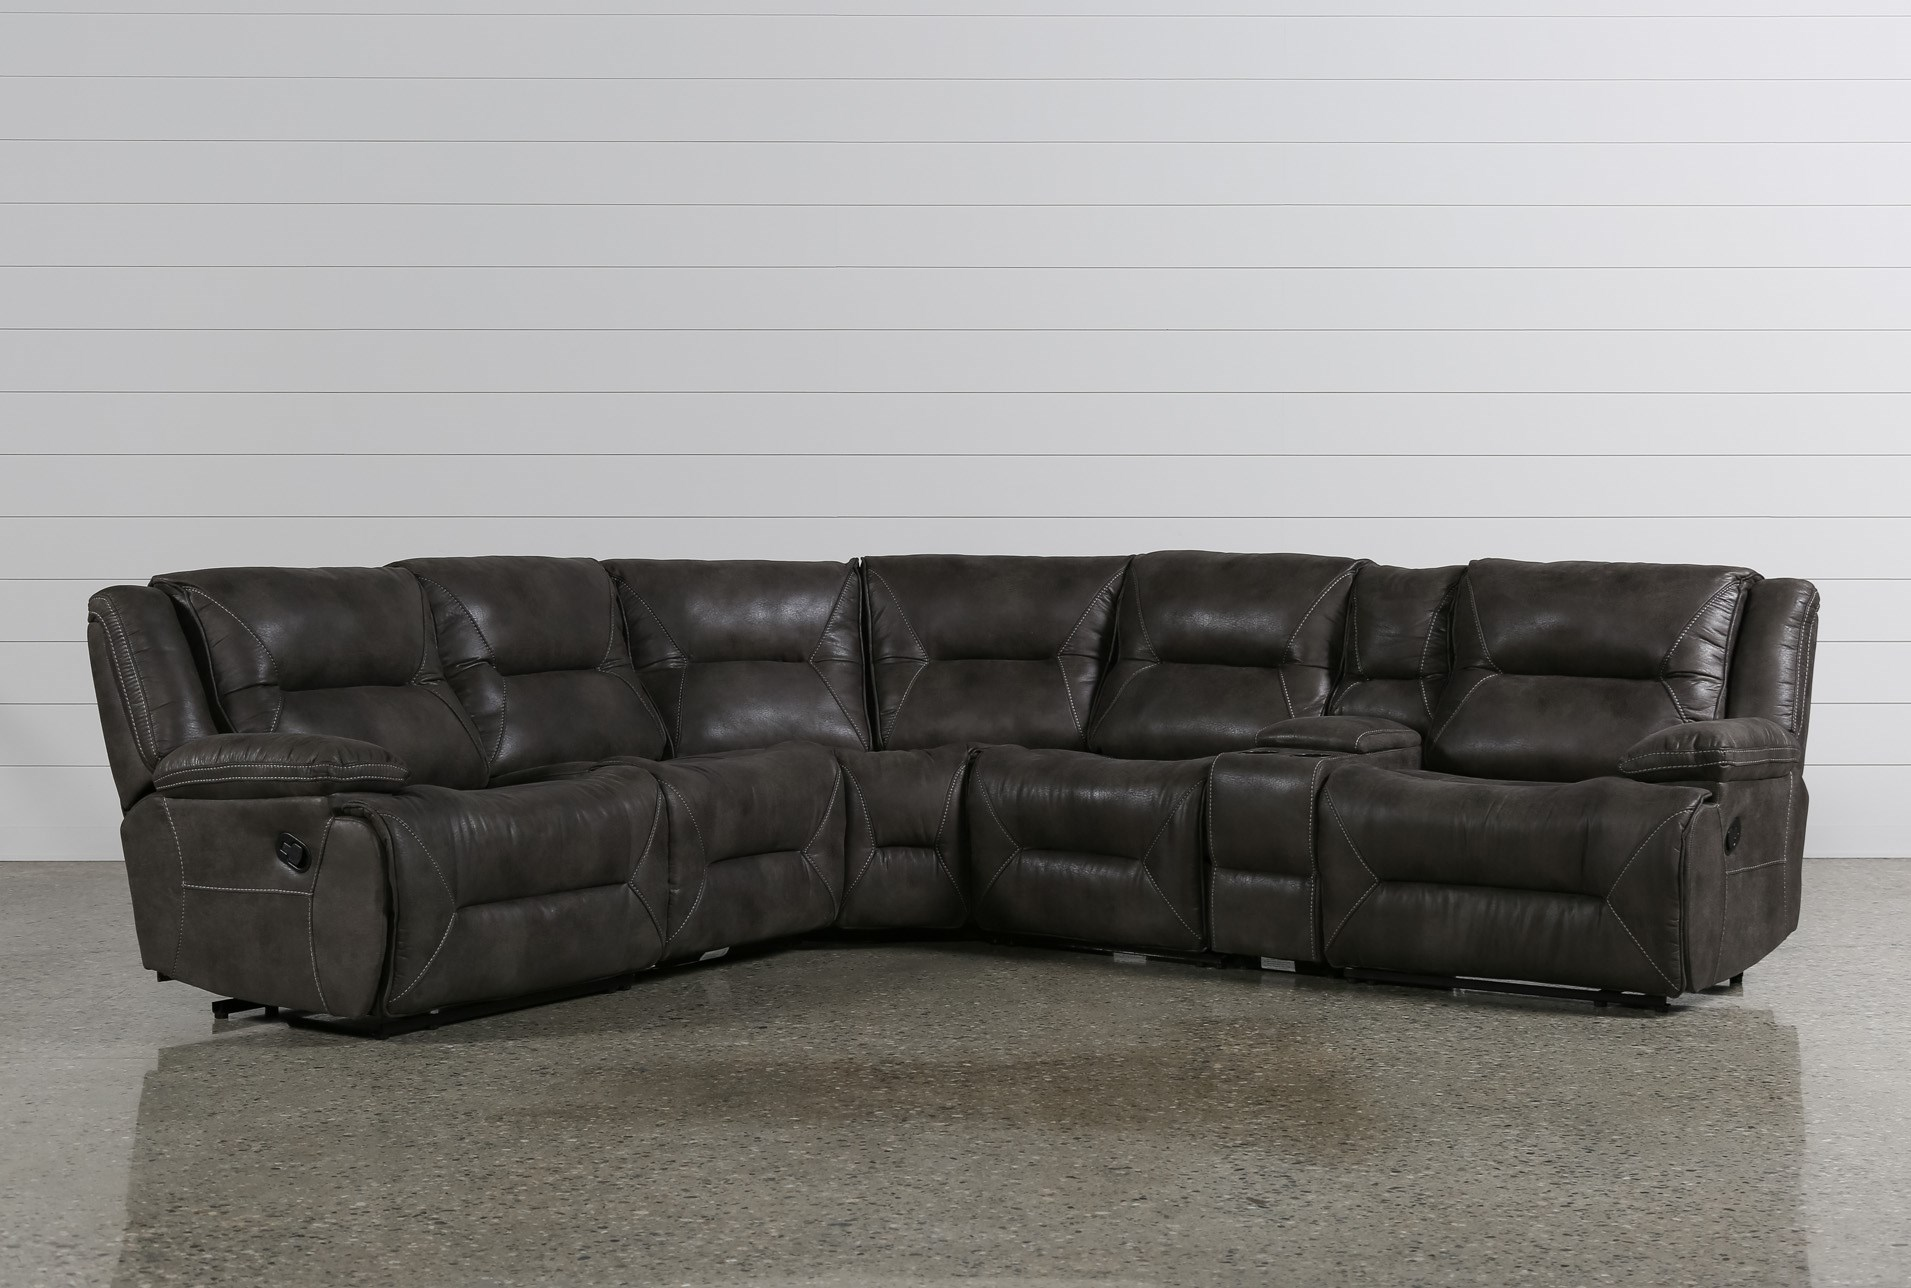 dk brown qlt with r pwr right rec fmt iccembed op sharpen city leather resmode memphis furniture ce reclining sec power chaise wid sectional vinyl dark hei usm